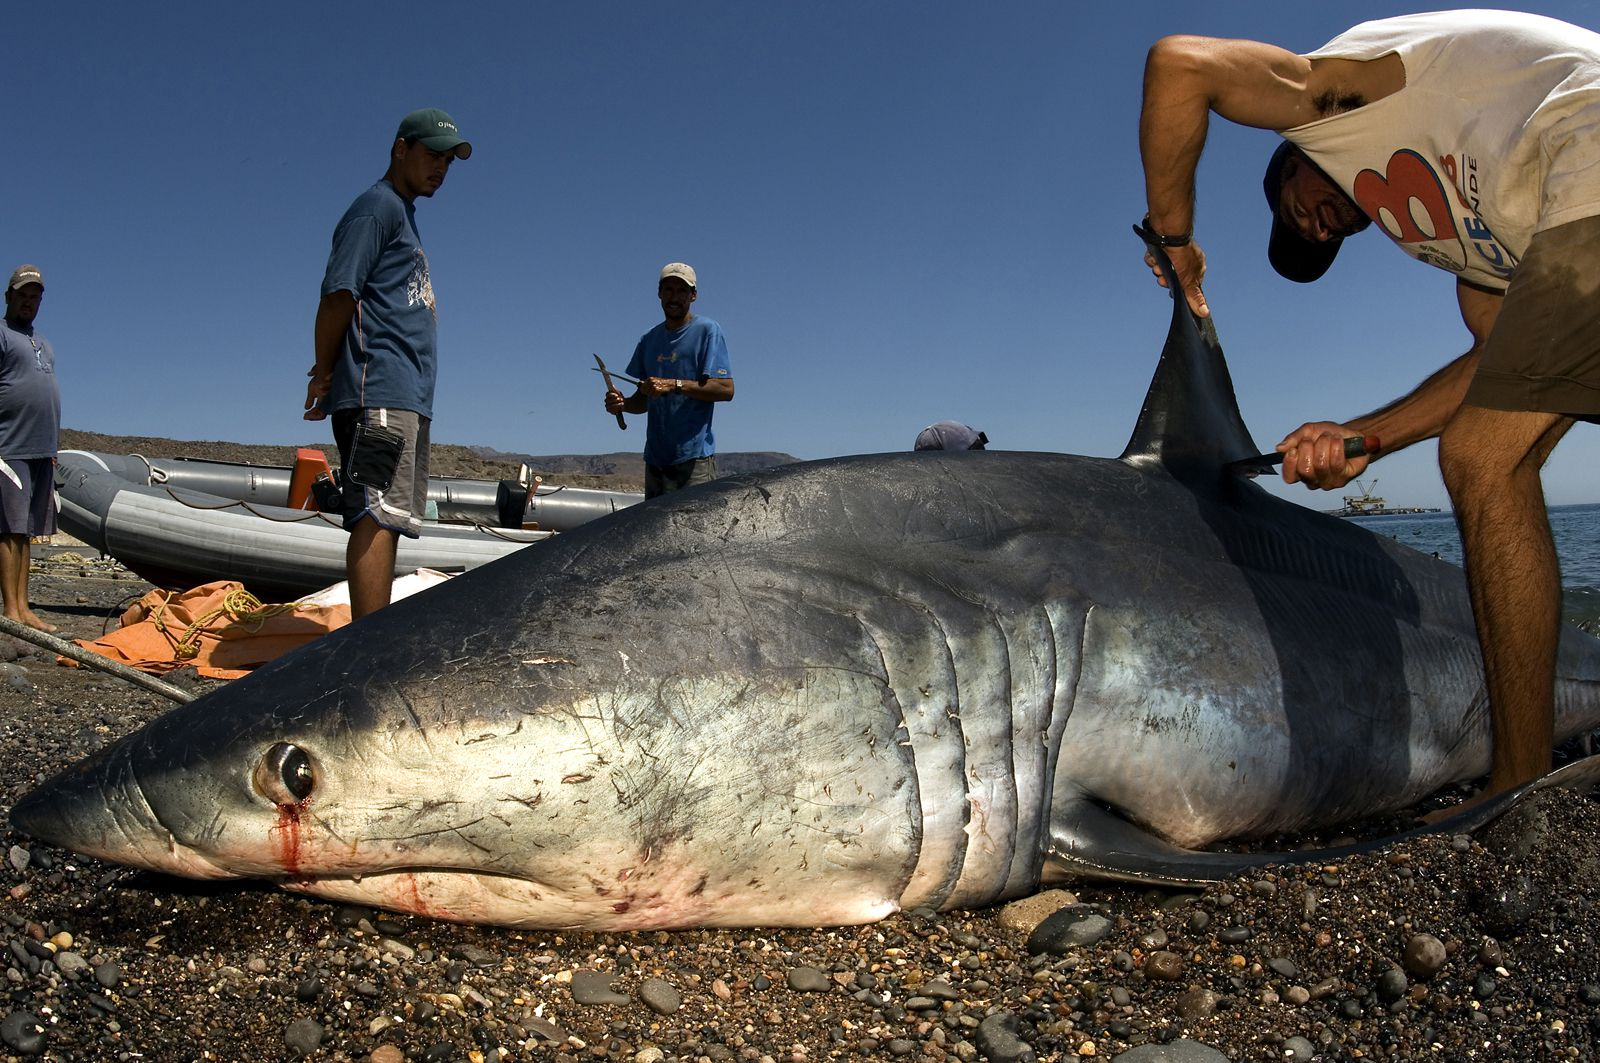 Controversy In Colombia For A Decree That Allows Shark Hunting To Market Its Fins